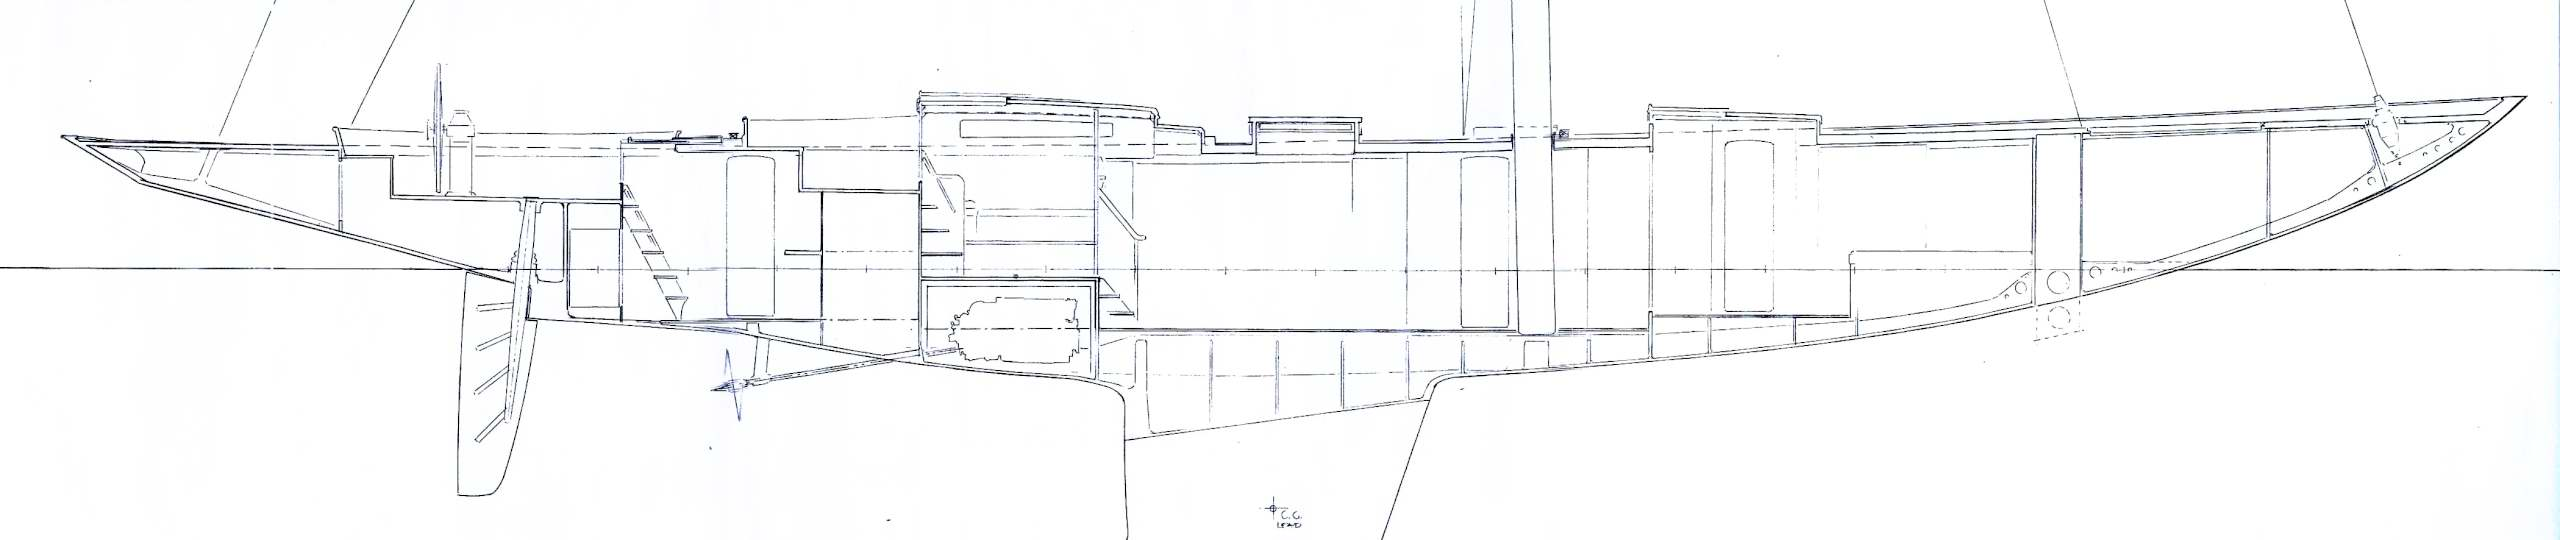 90' Classic, elevation, sketch (c) Heyman Yachts